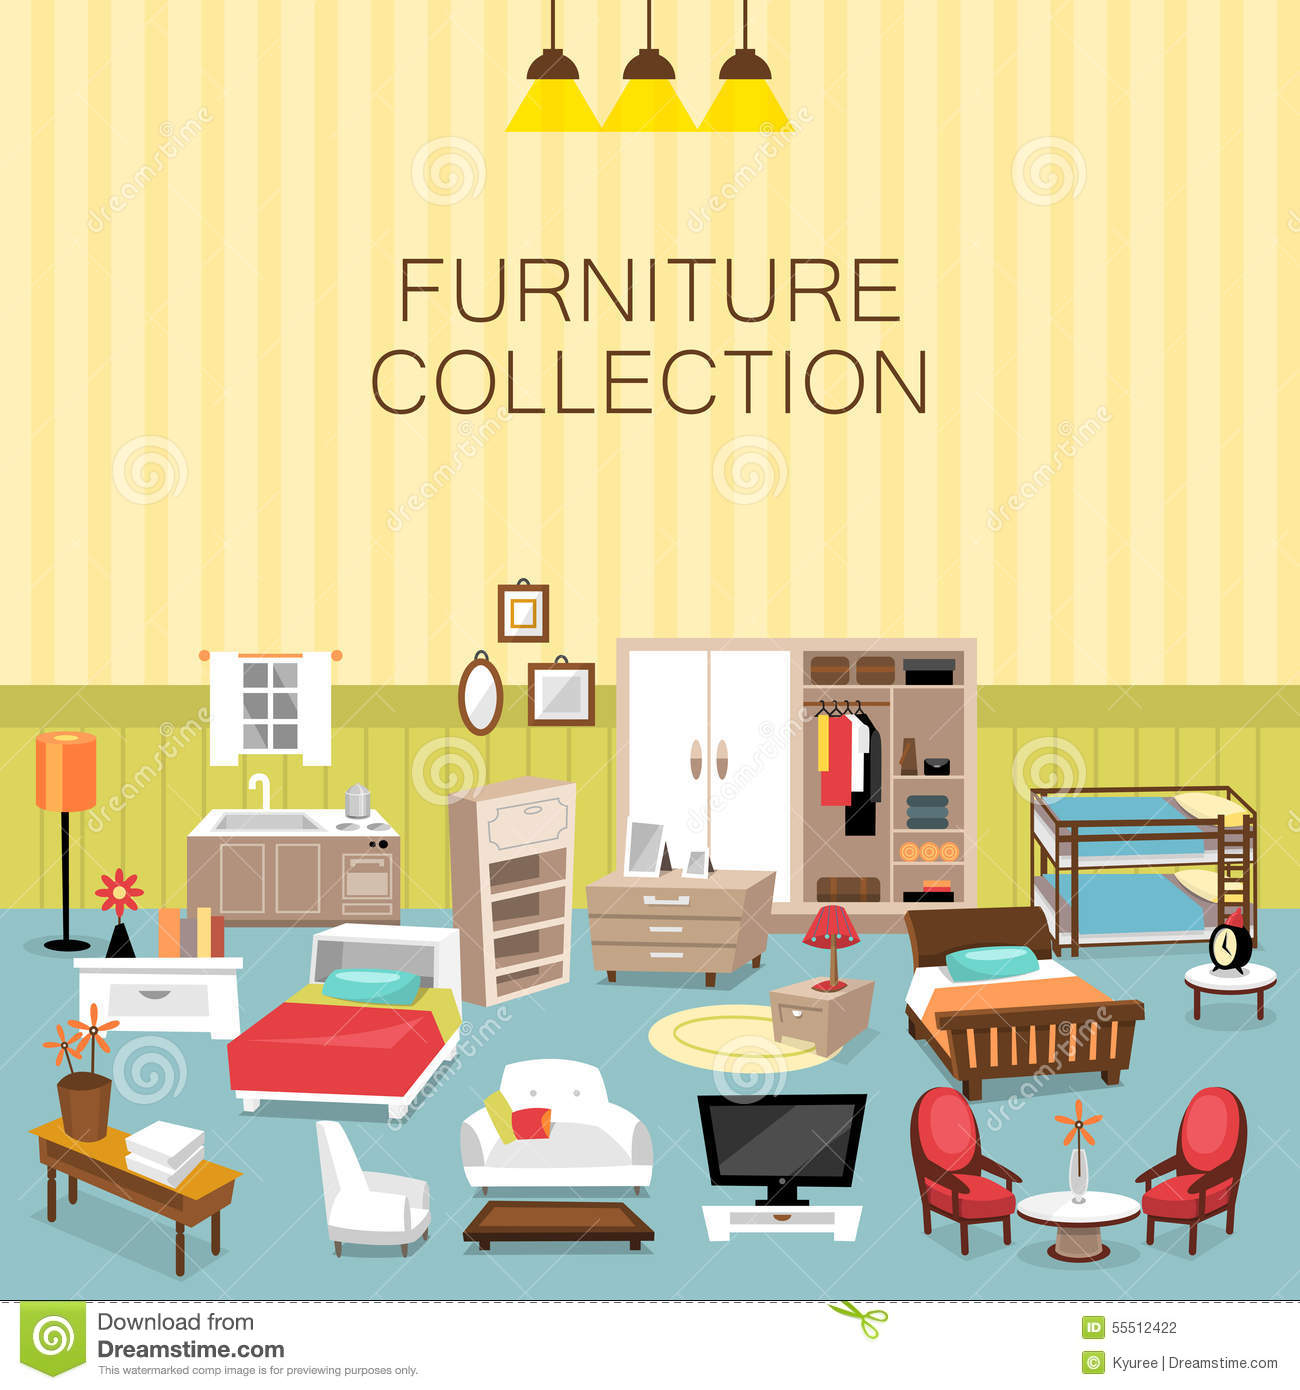 Design element and furniture collection for home interior for Interior design images vector